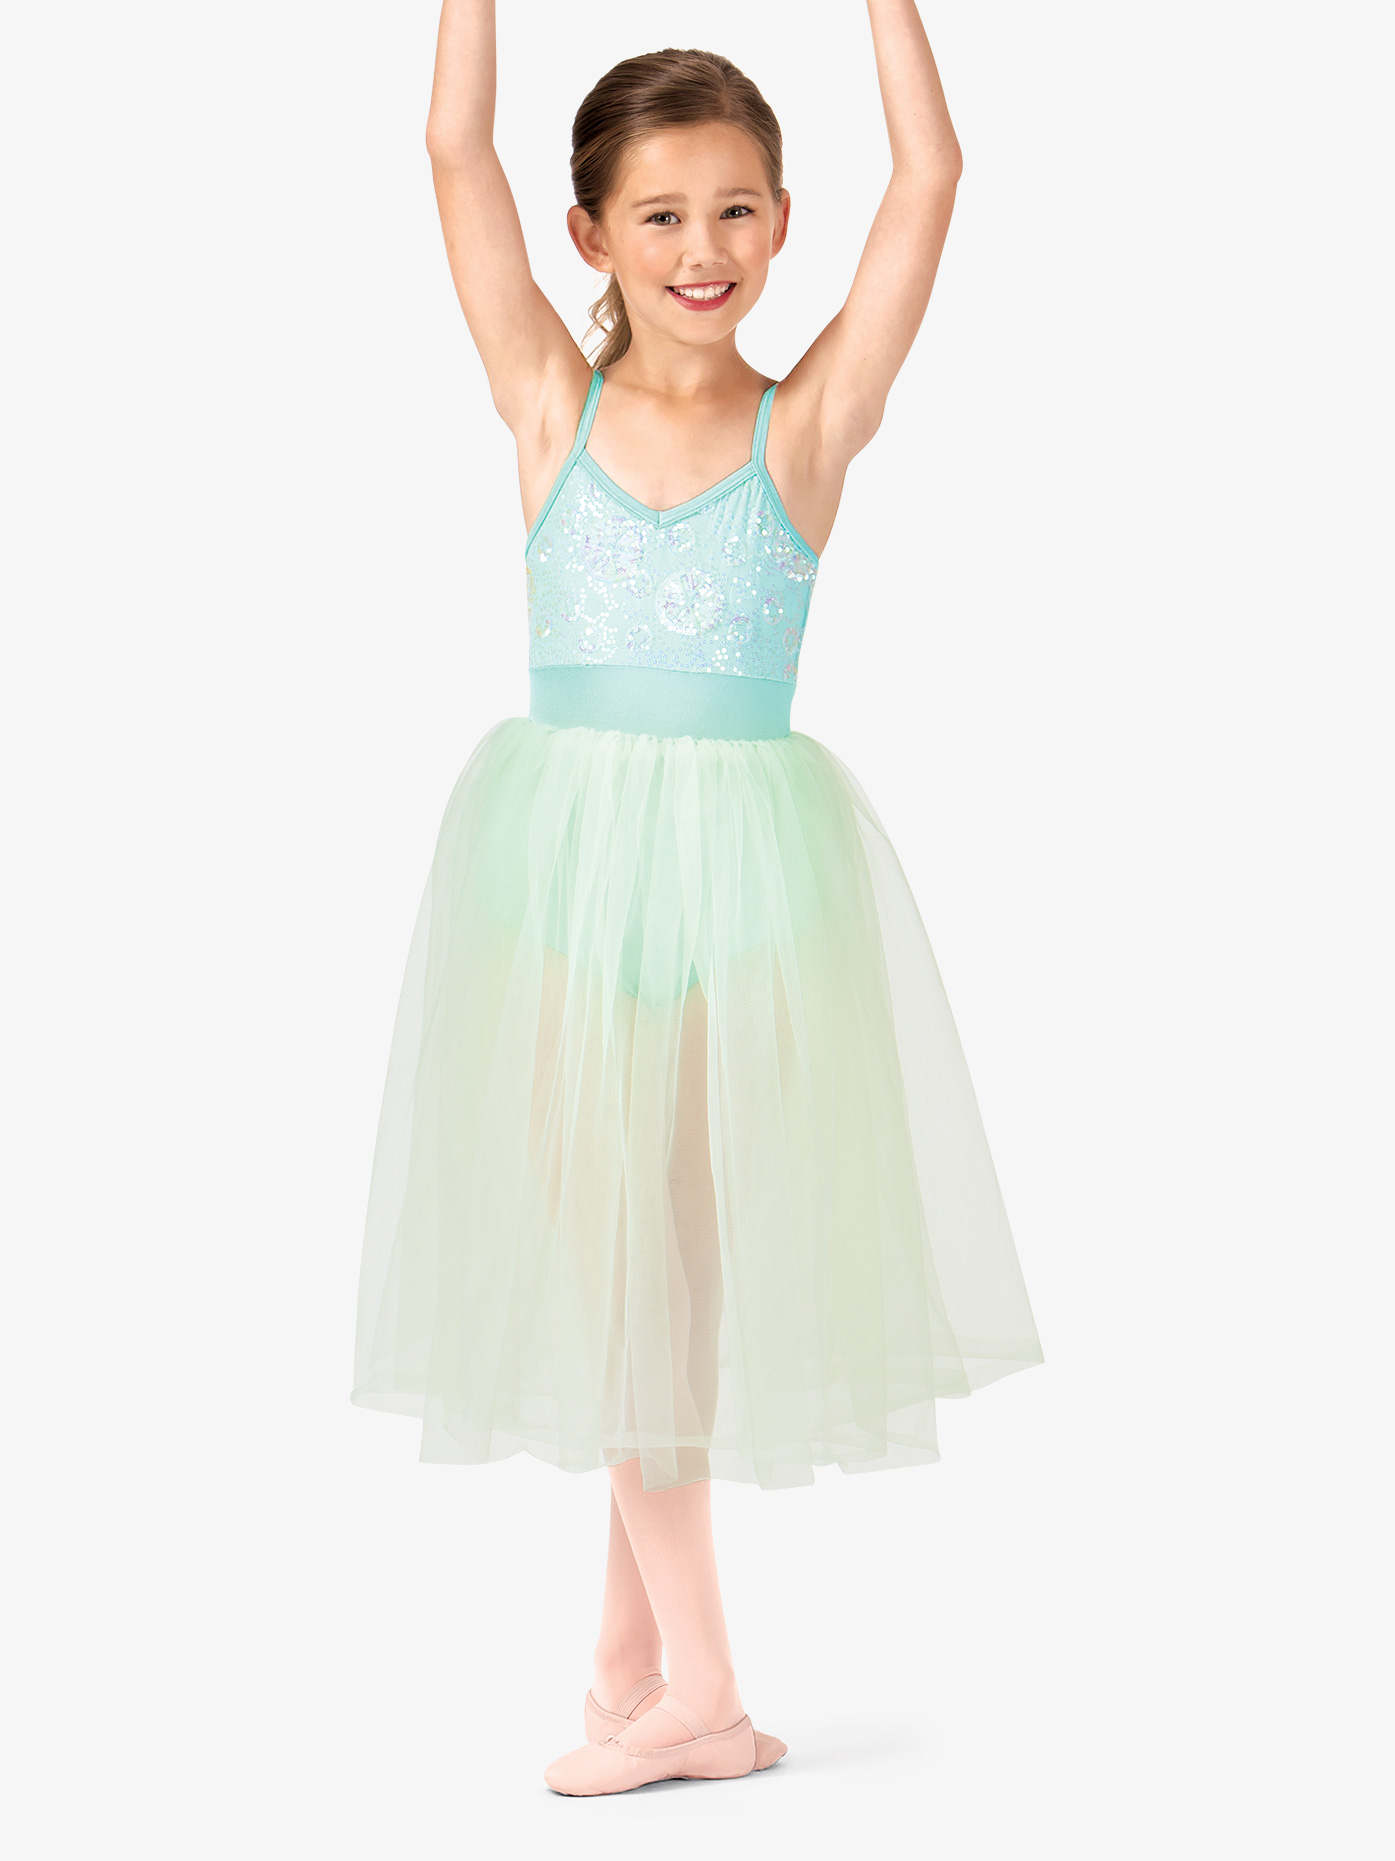 fd536ea7aa64 Romantic Sequin Camisole Tutu Costume Dress - Ballet Lyrical